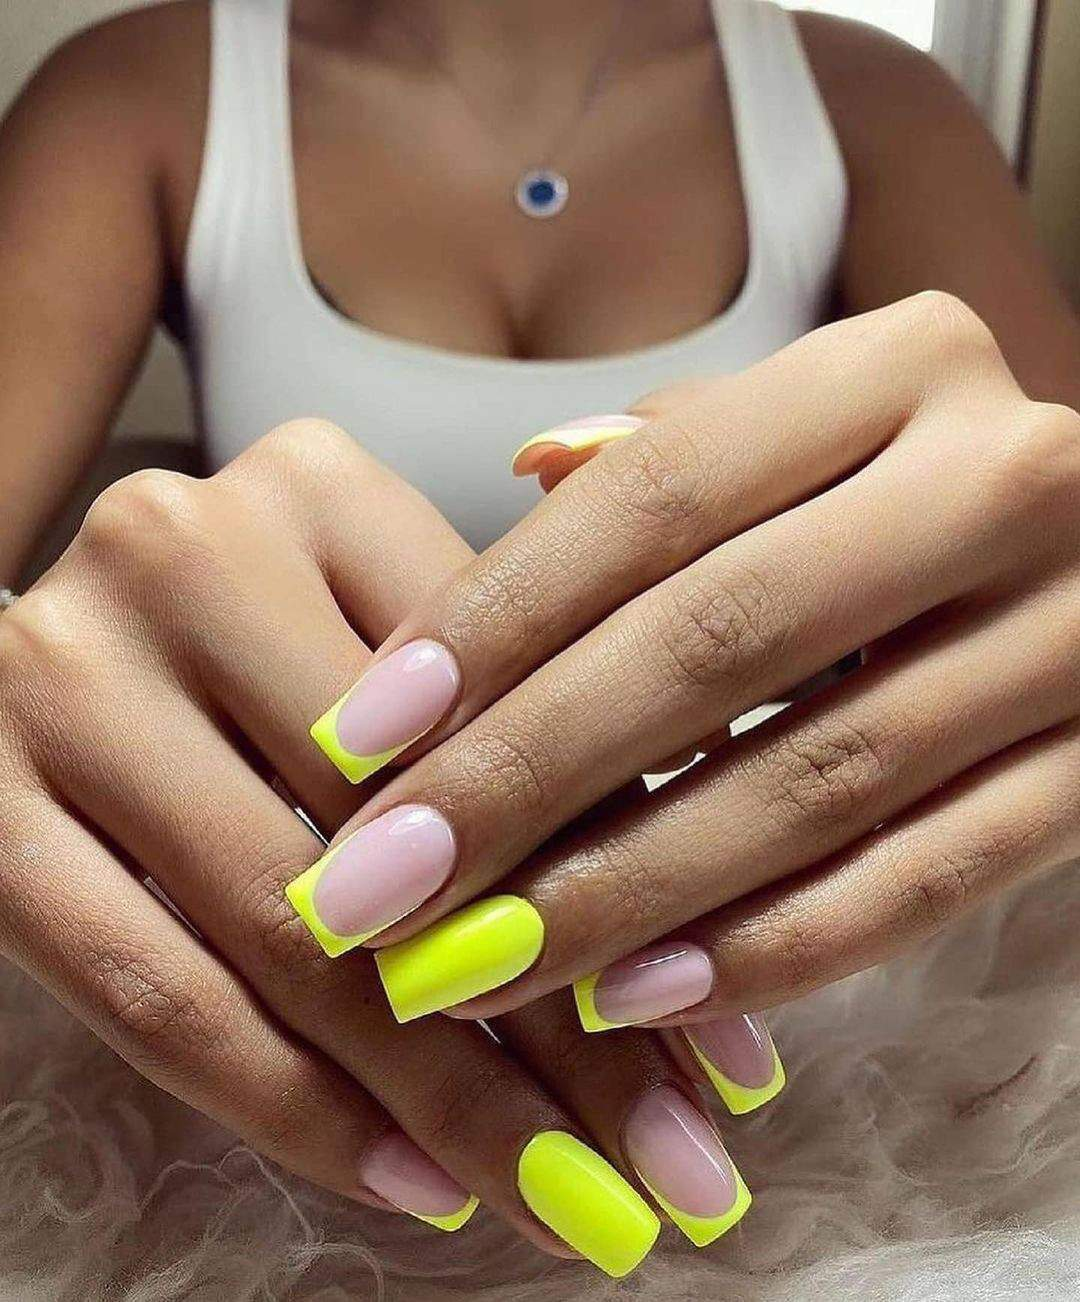 30+ Best Summer 2021 Nail Trends And Manicure Ideas images 28